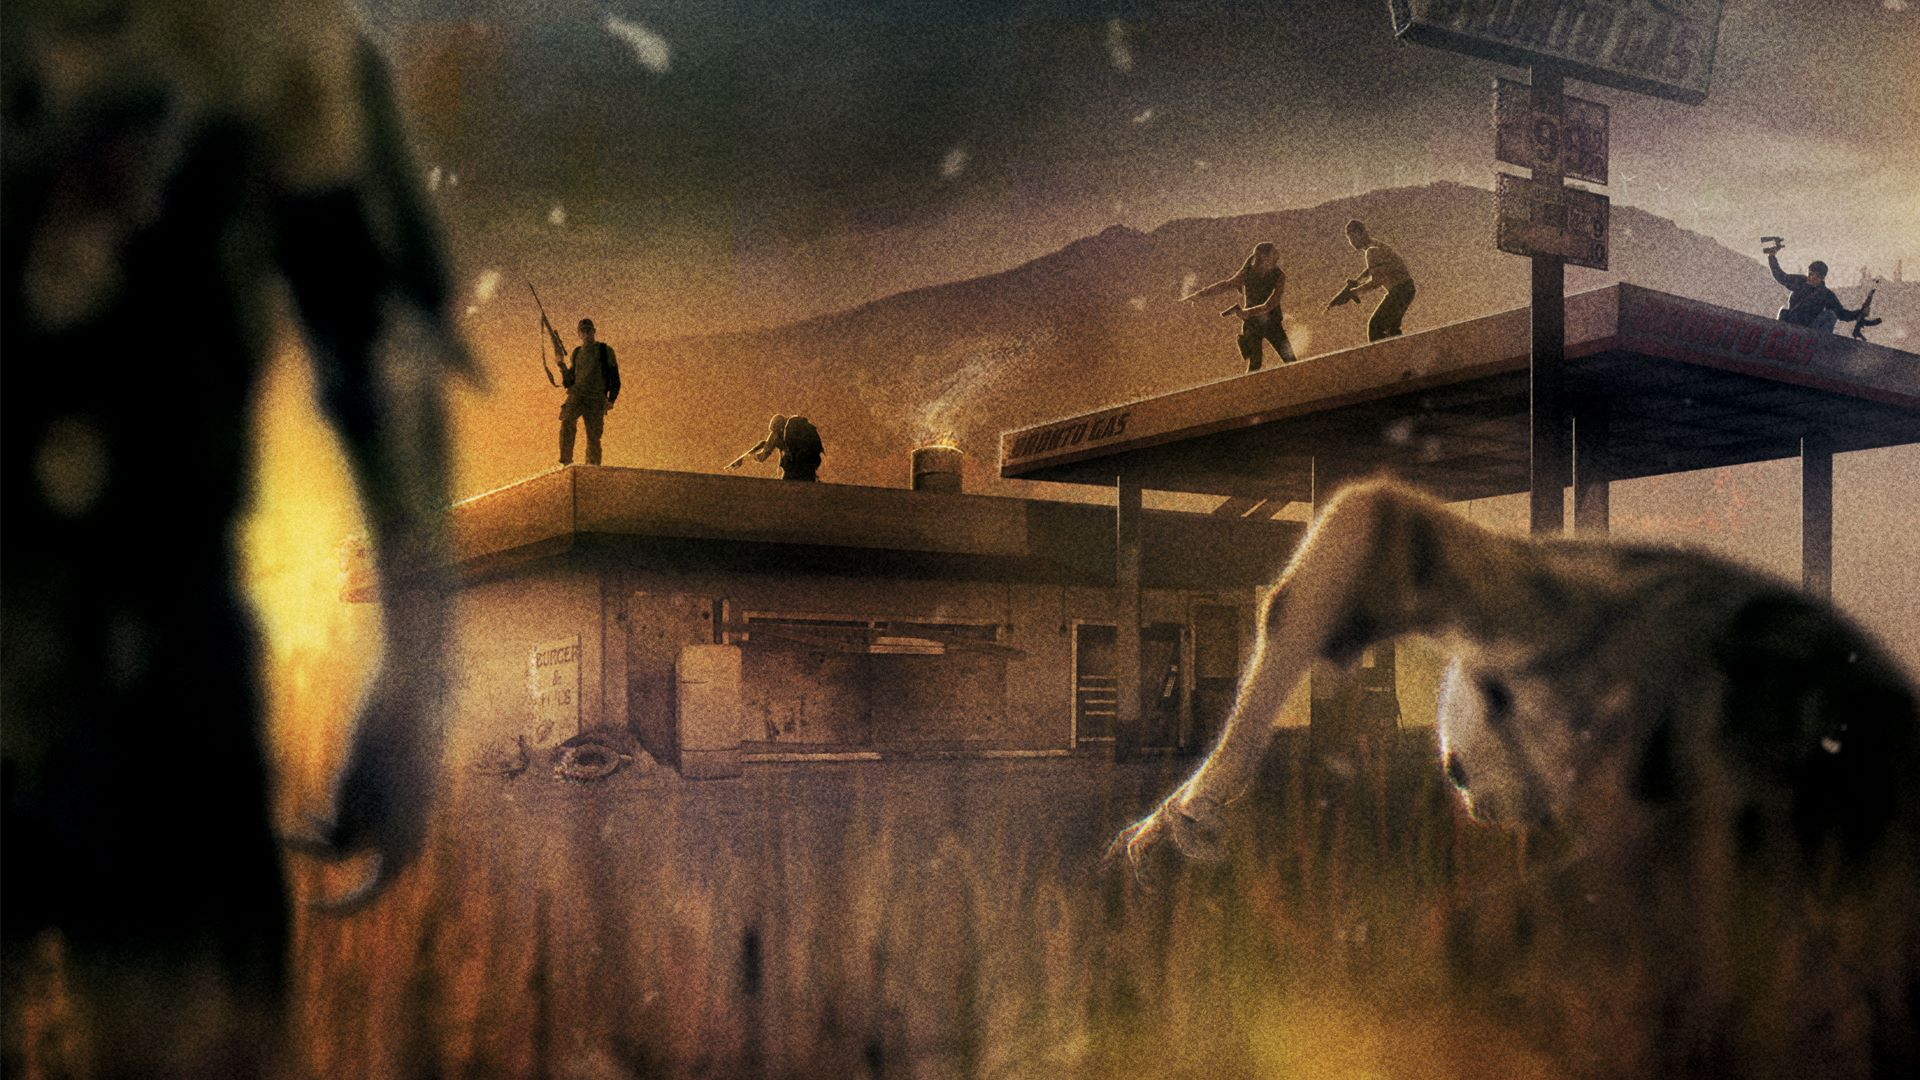 download game state of decay pc repack